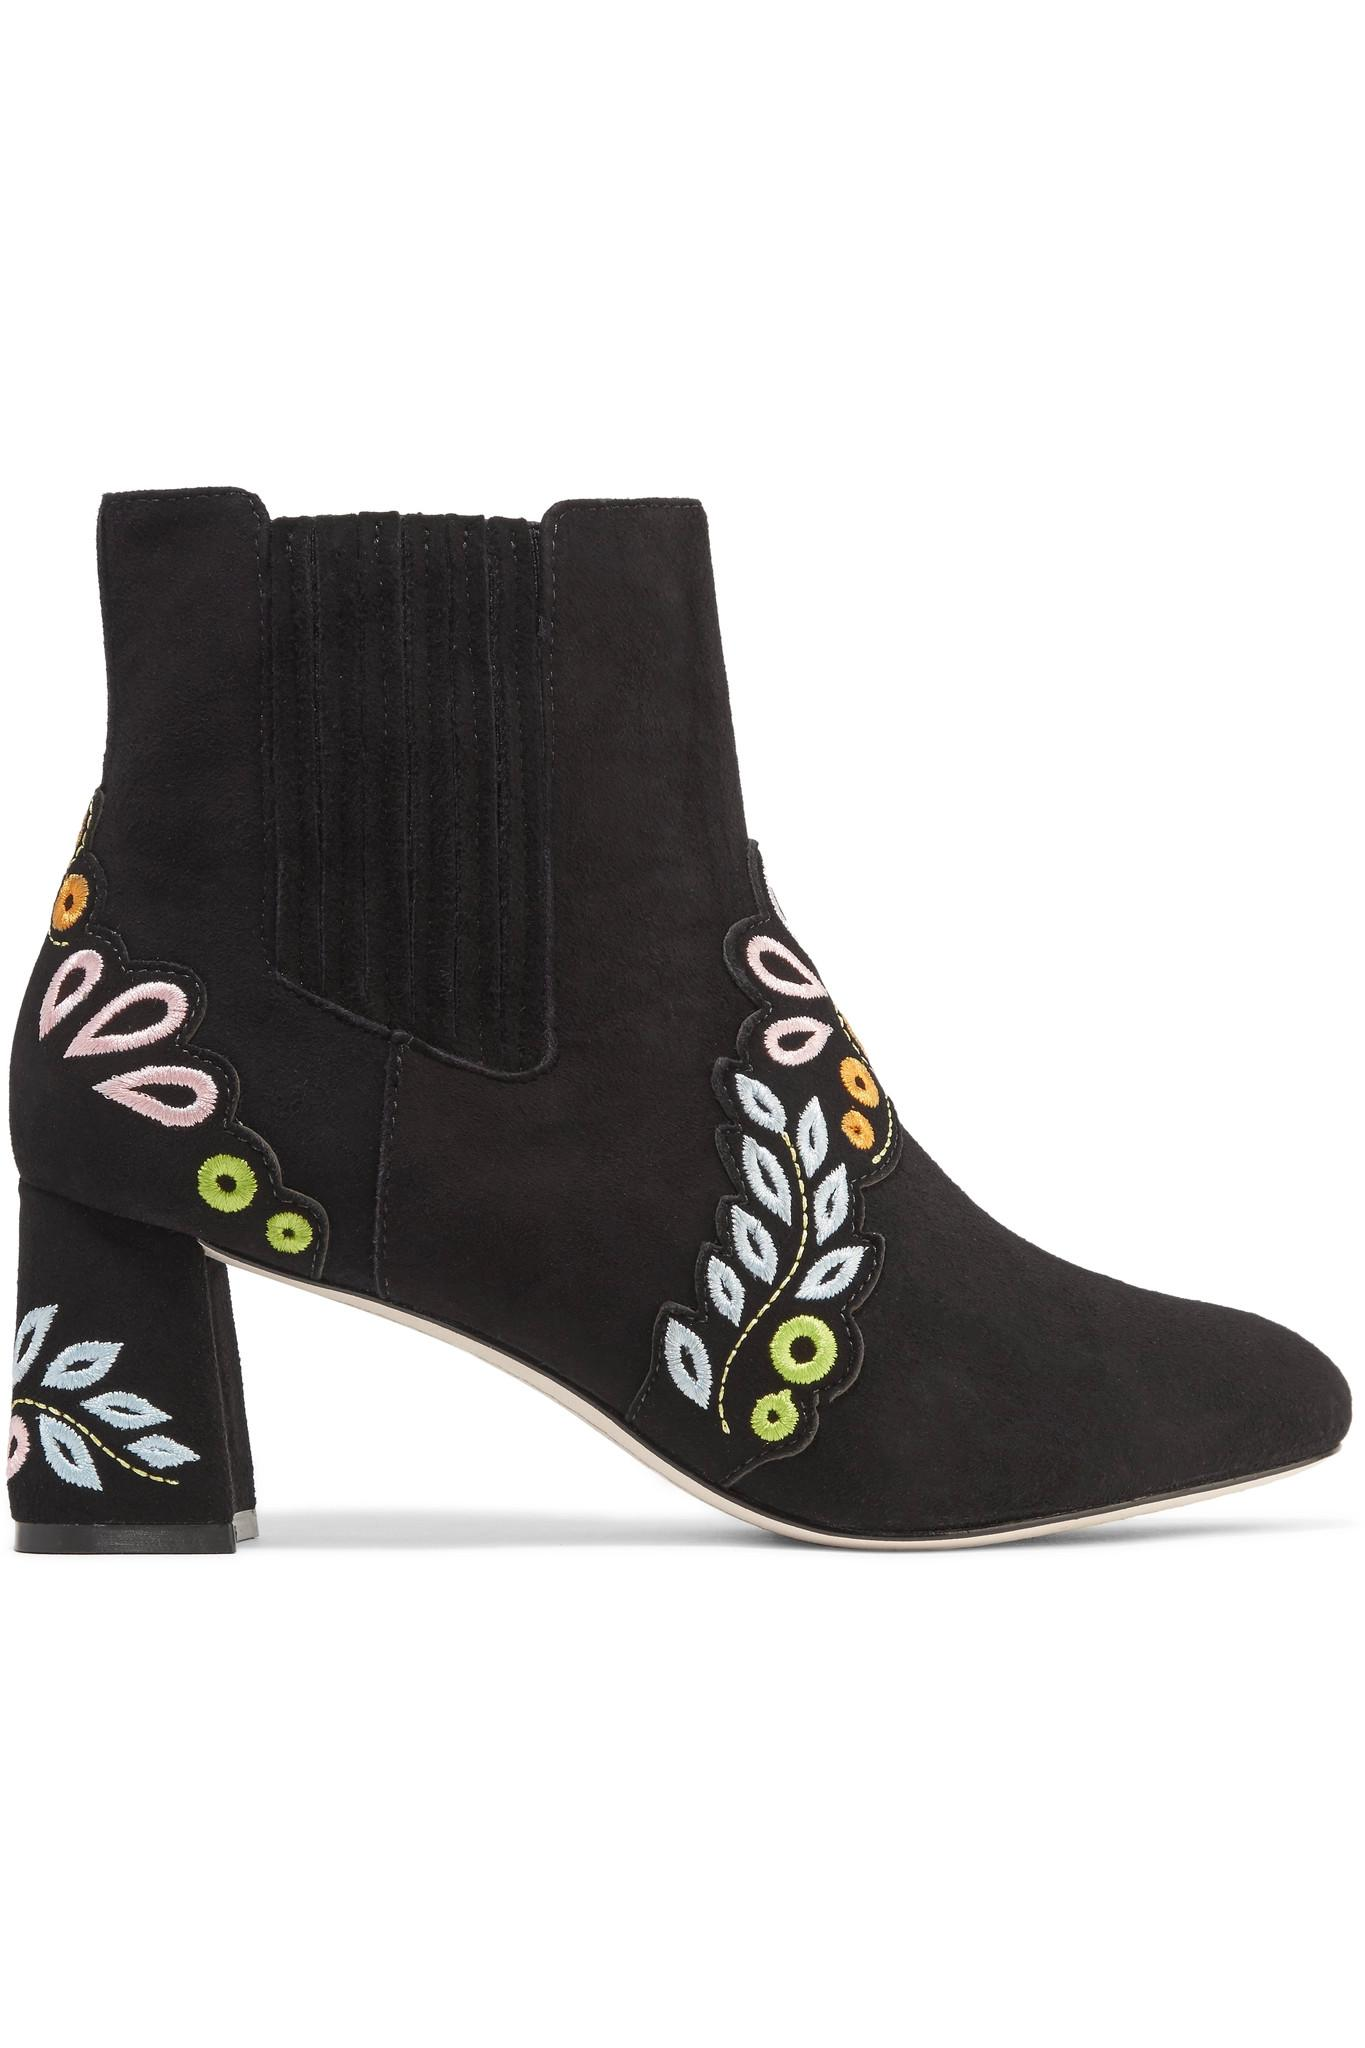 e4de6c76aa4 Sophia webster Liliana Embroidered Suede Ankle Boots in Black